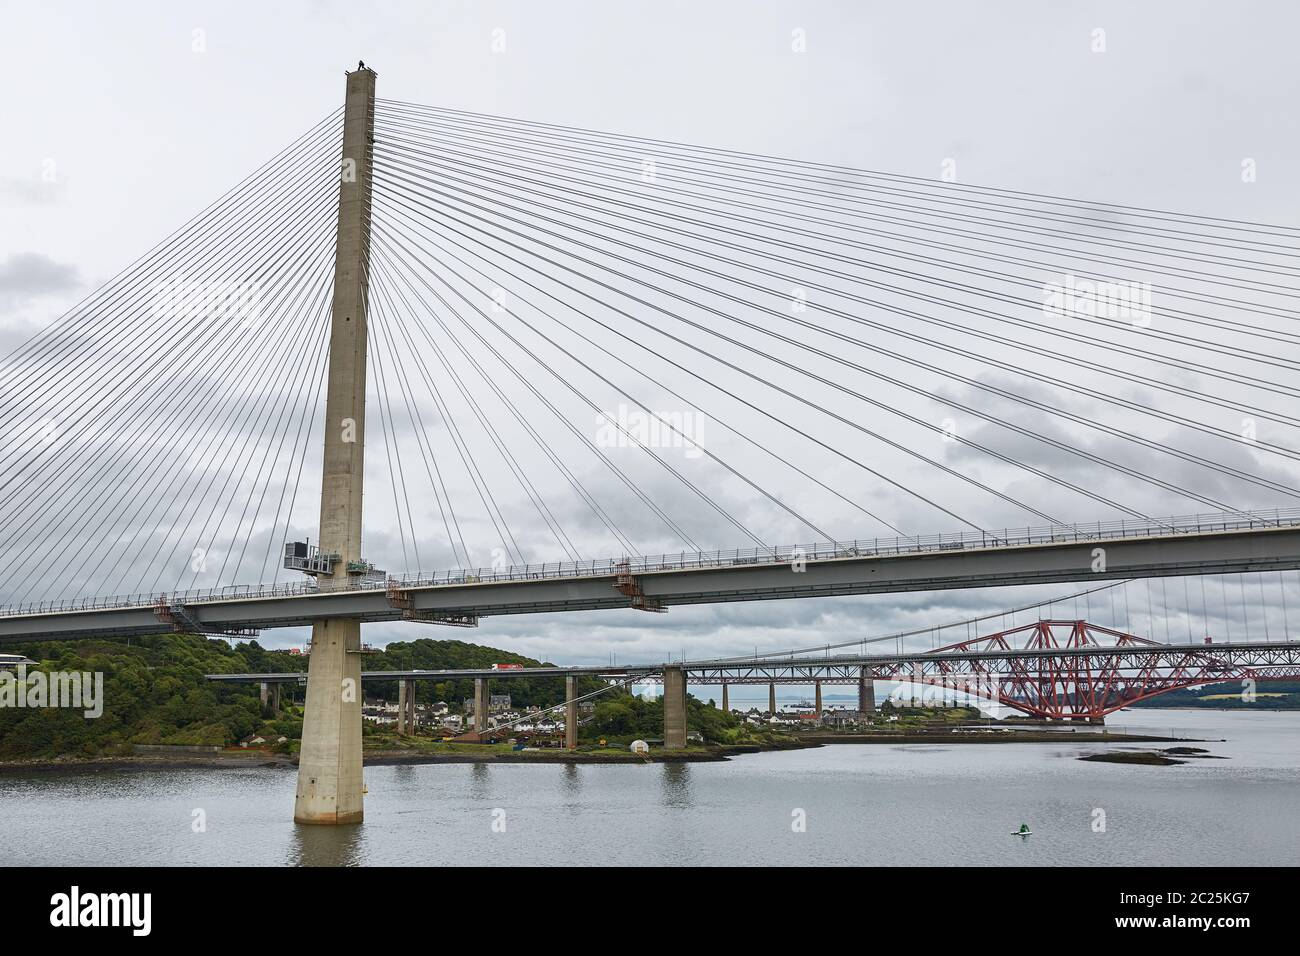 The new Queensferry Crossing bridge over the Firth of Forth with the older Forth Road bridge and the Stock Photo